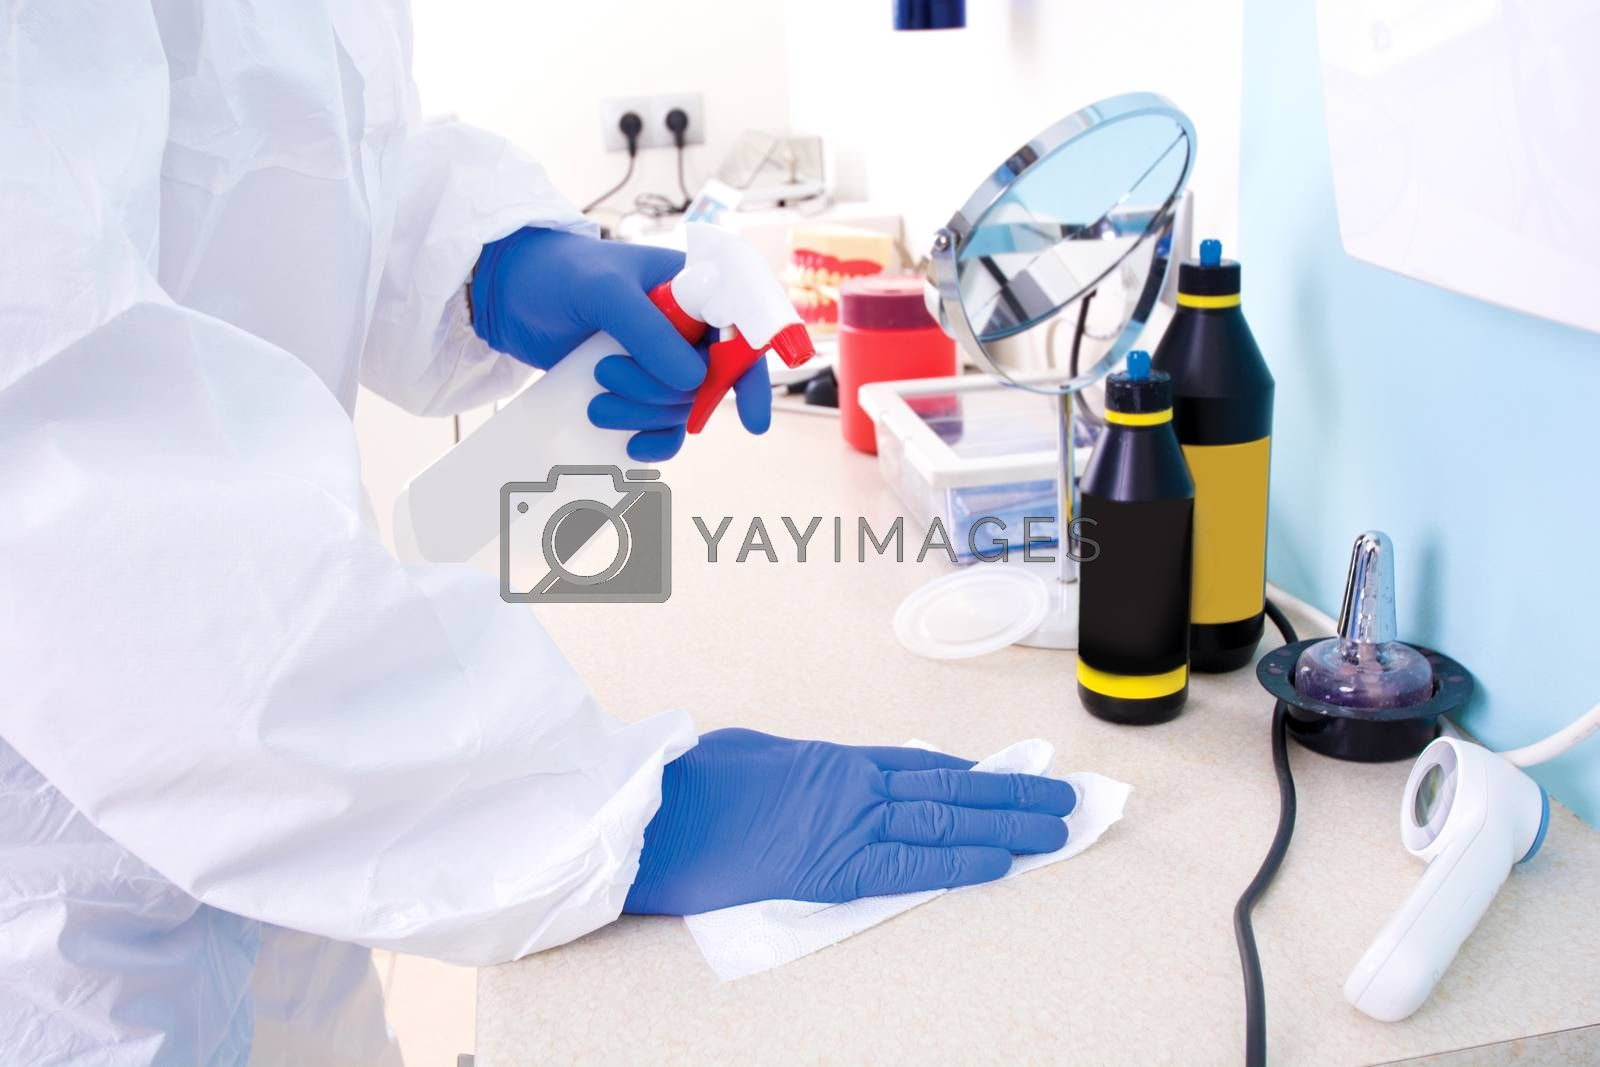 Doctor in protective suit uniform cleans the laboratory. Coronavirus outbreak. Covid-19 concept.